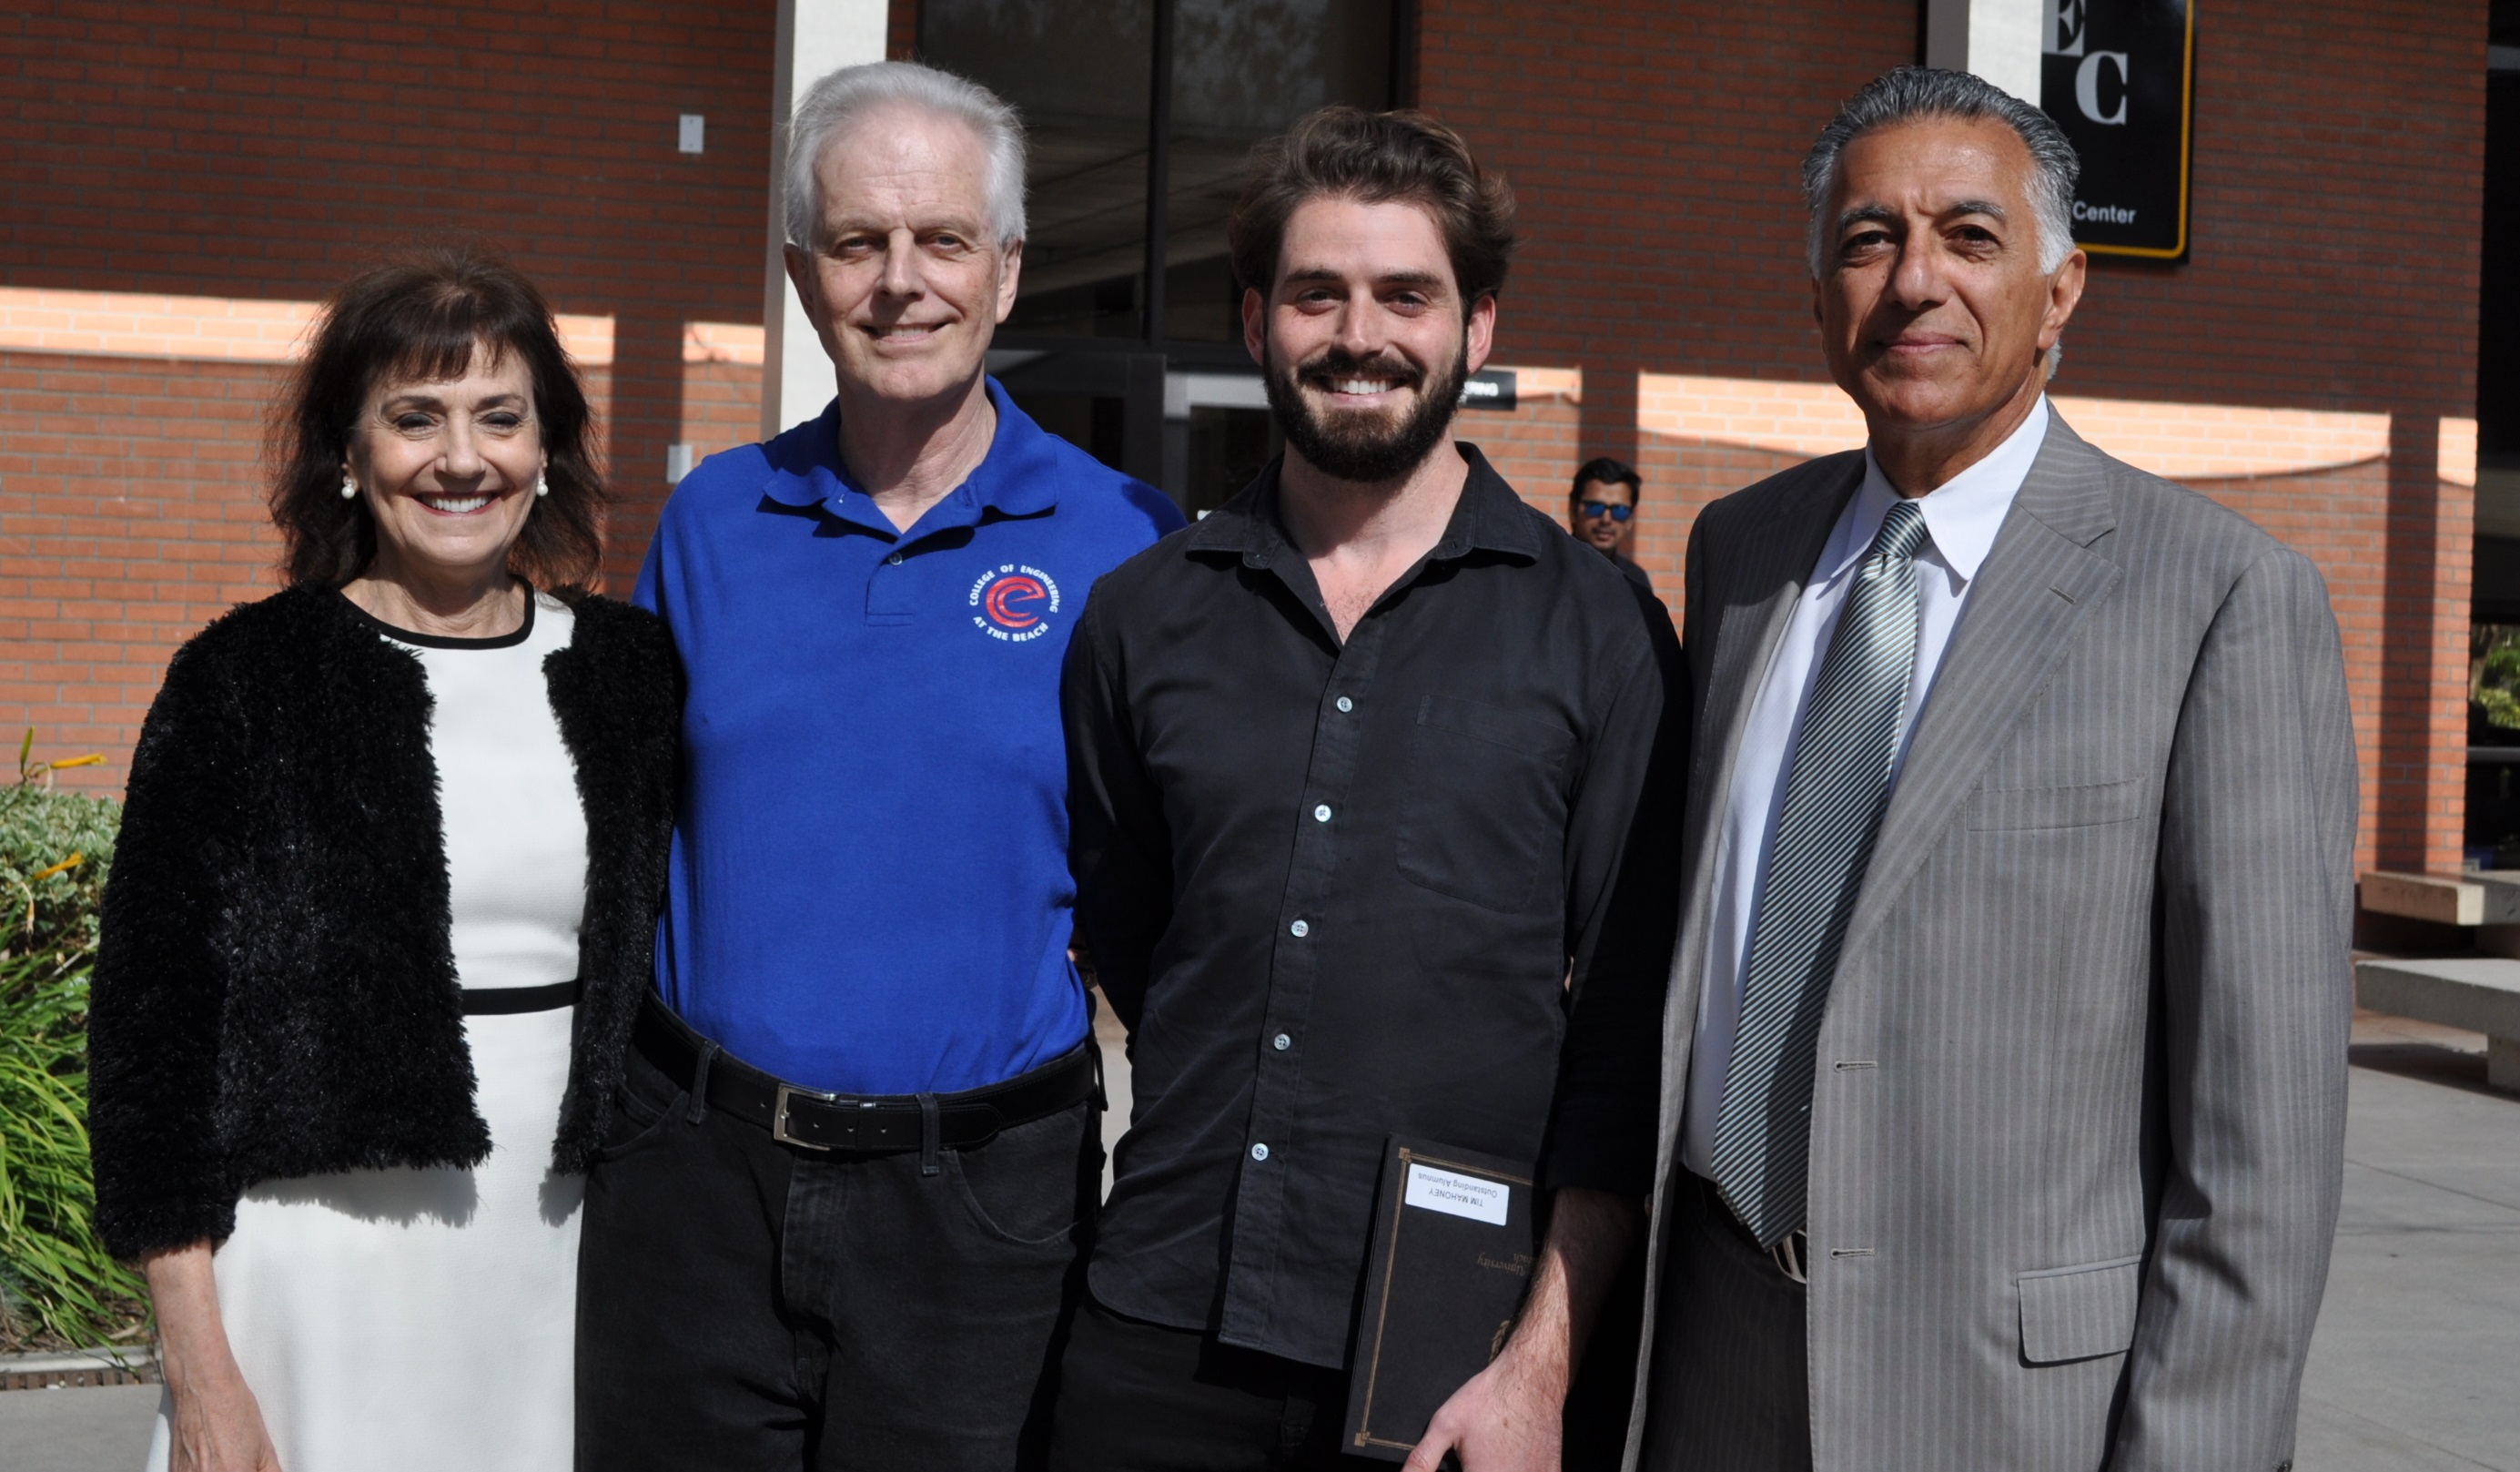 Group shot of Louise and Mike Mahoney, left, with their son, Tom, and COE Dean Forouzan Golshani